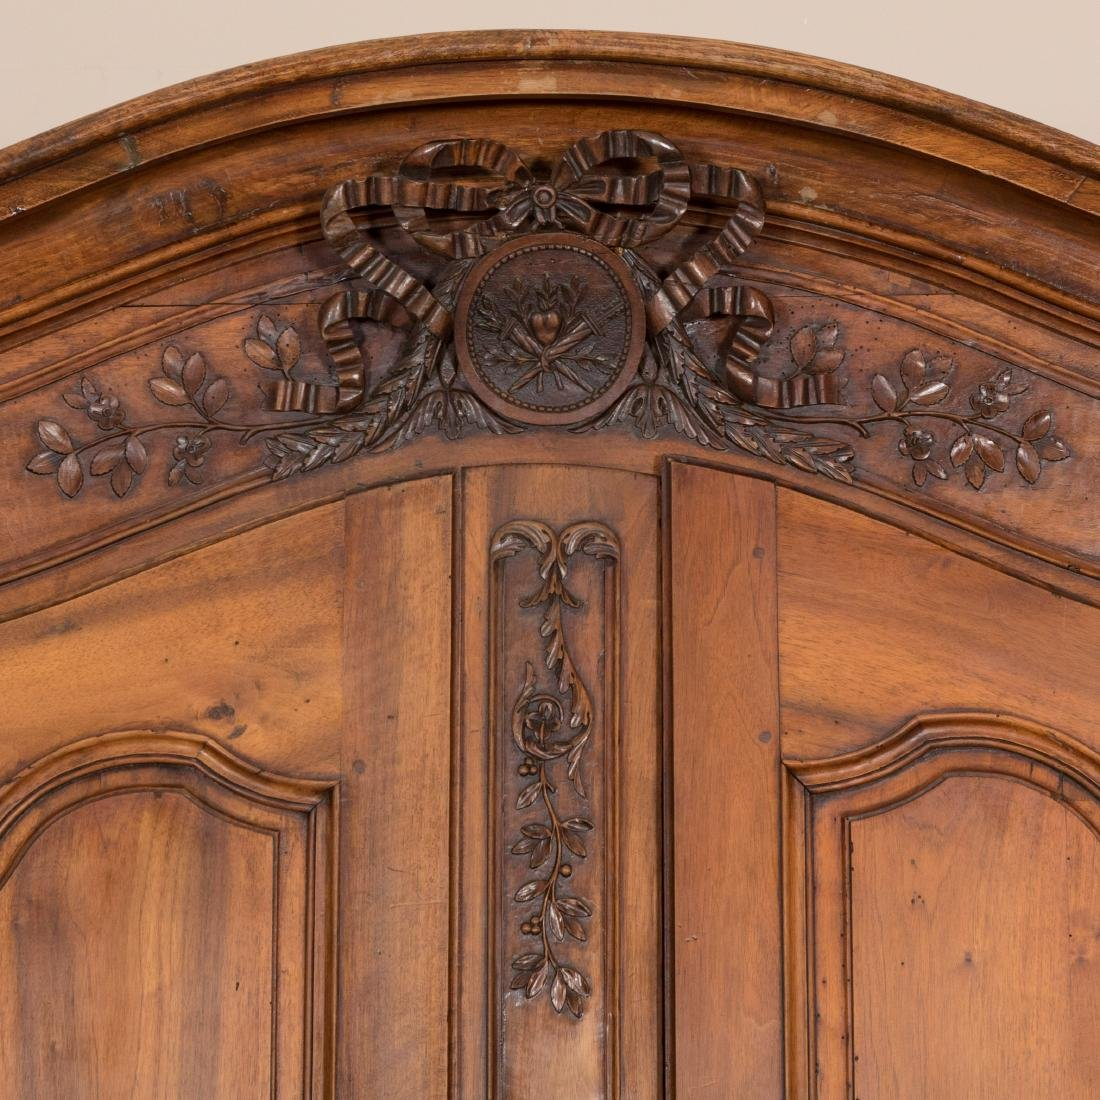 French Provincial Carved Walnut Armoire - 3